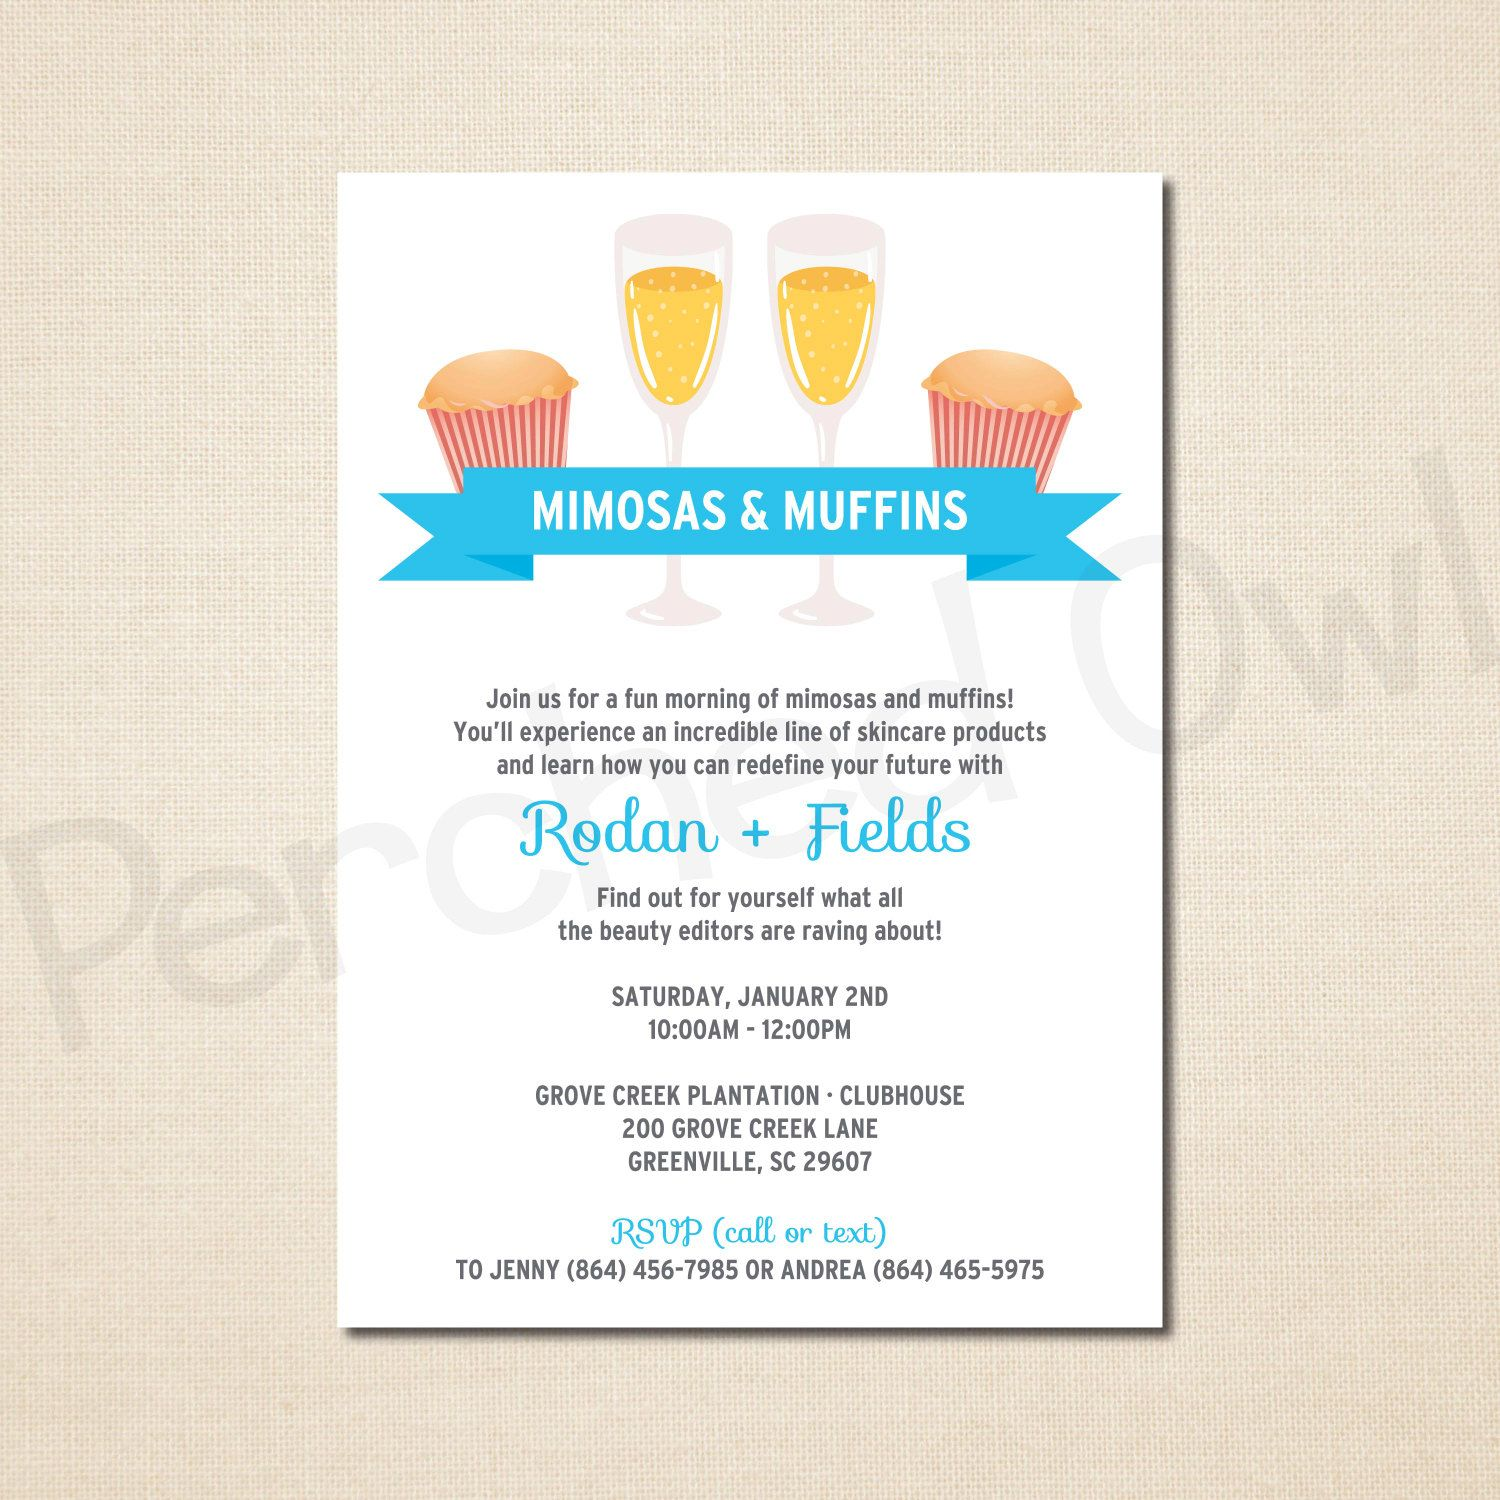 Mimosas & Muffins Invitation - Direct Selling - Business Launch ...